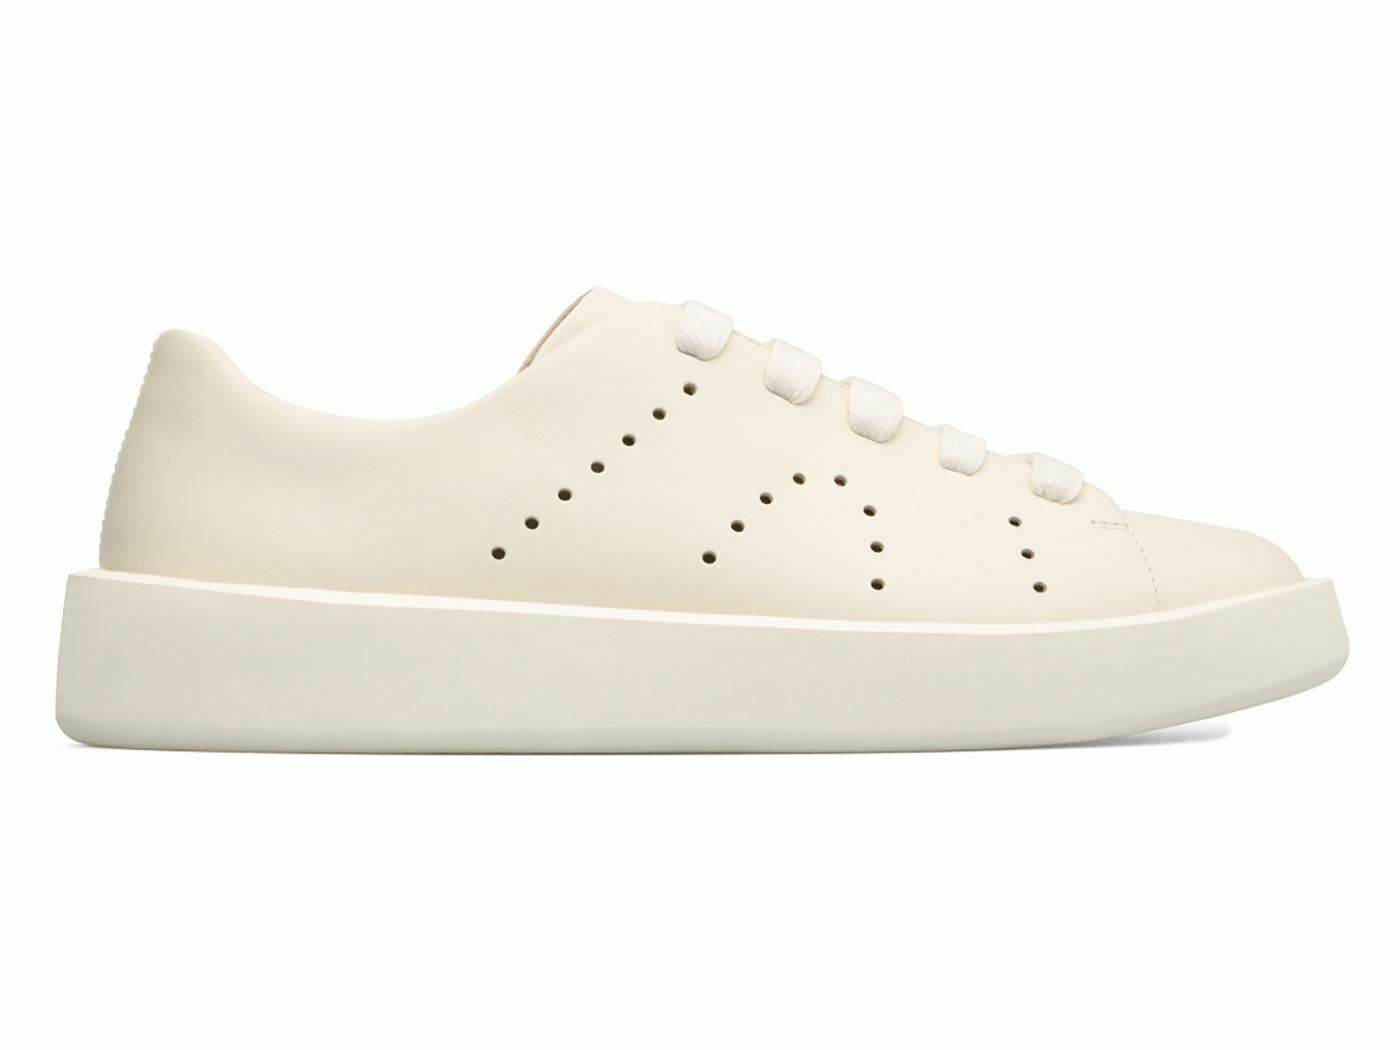 CAMPER K100432-001 COURB baskets hommes IN PELLE blanc CREMA MainApps